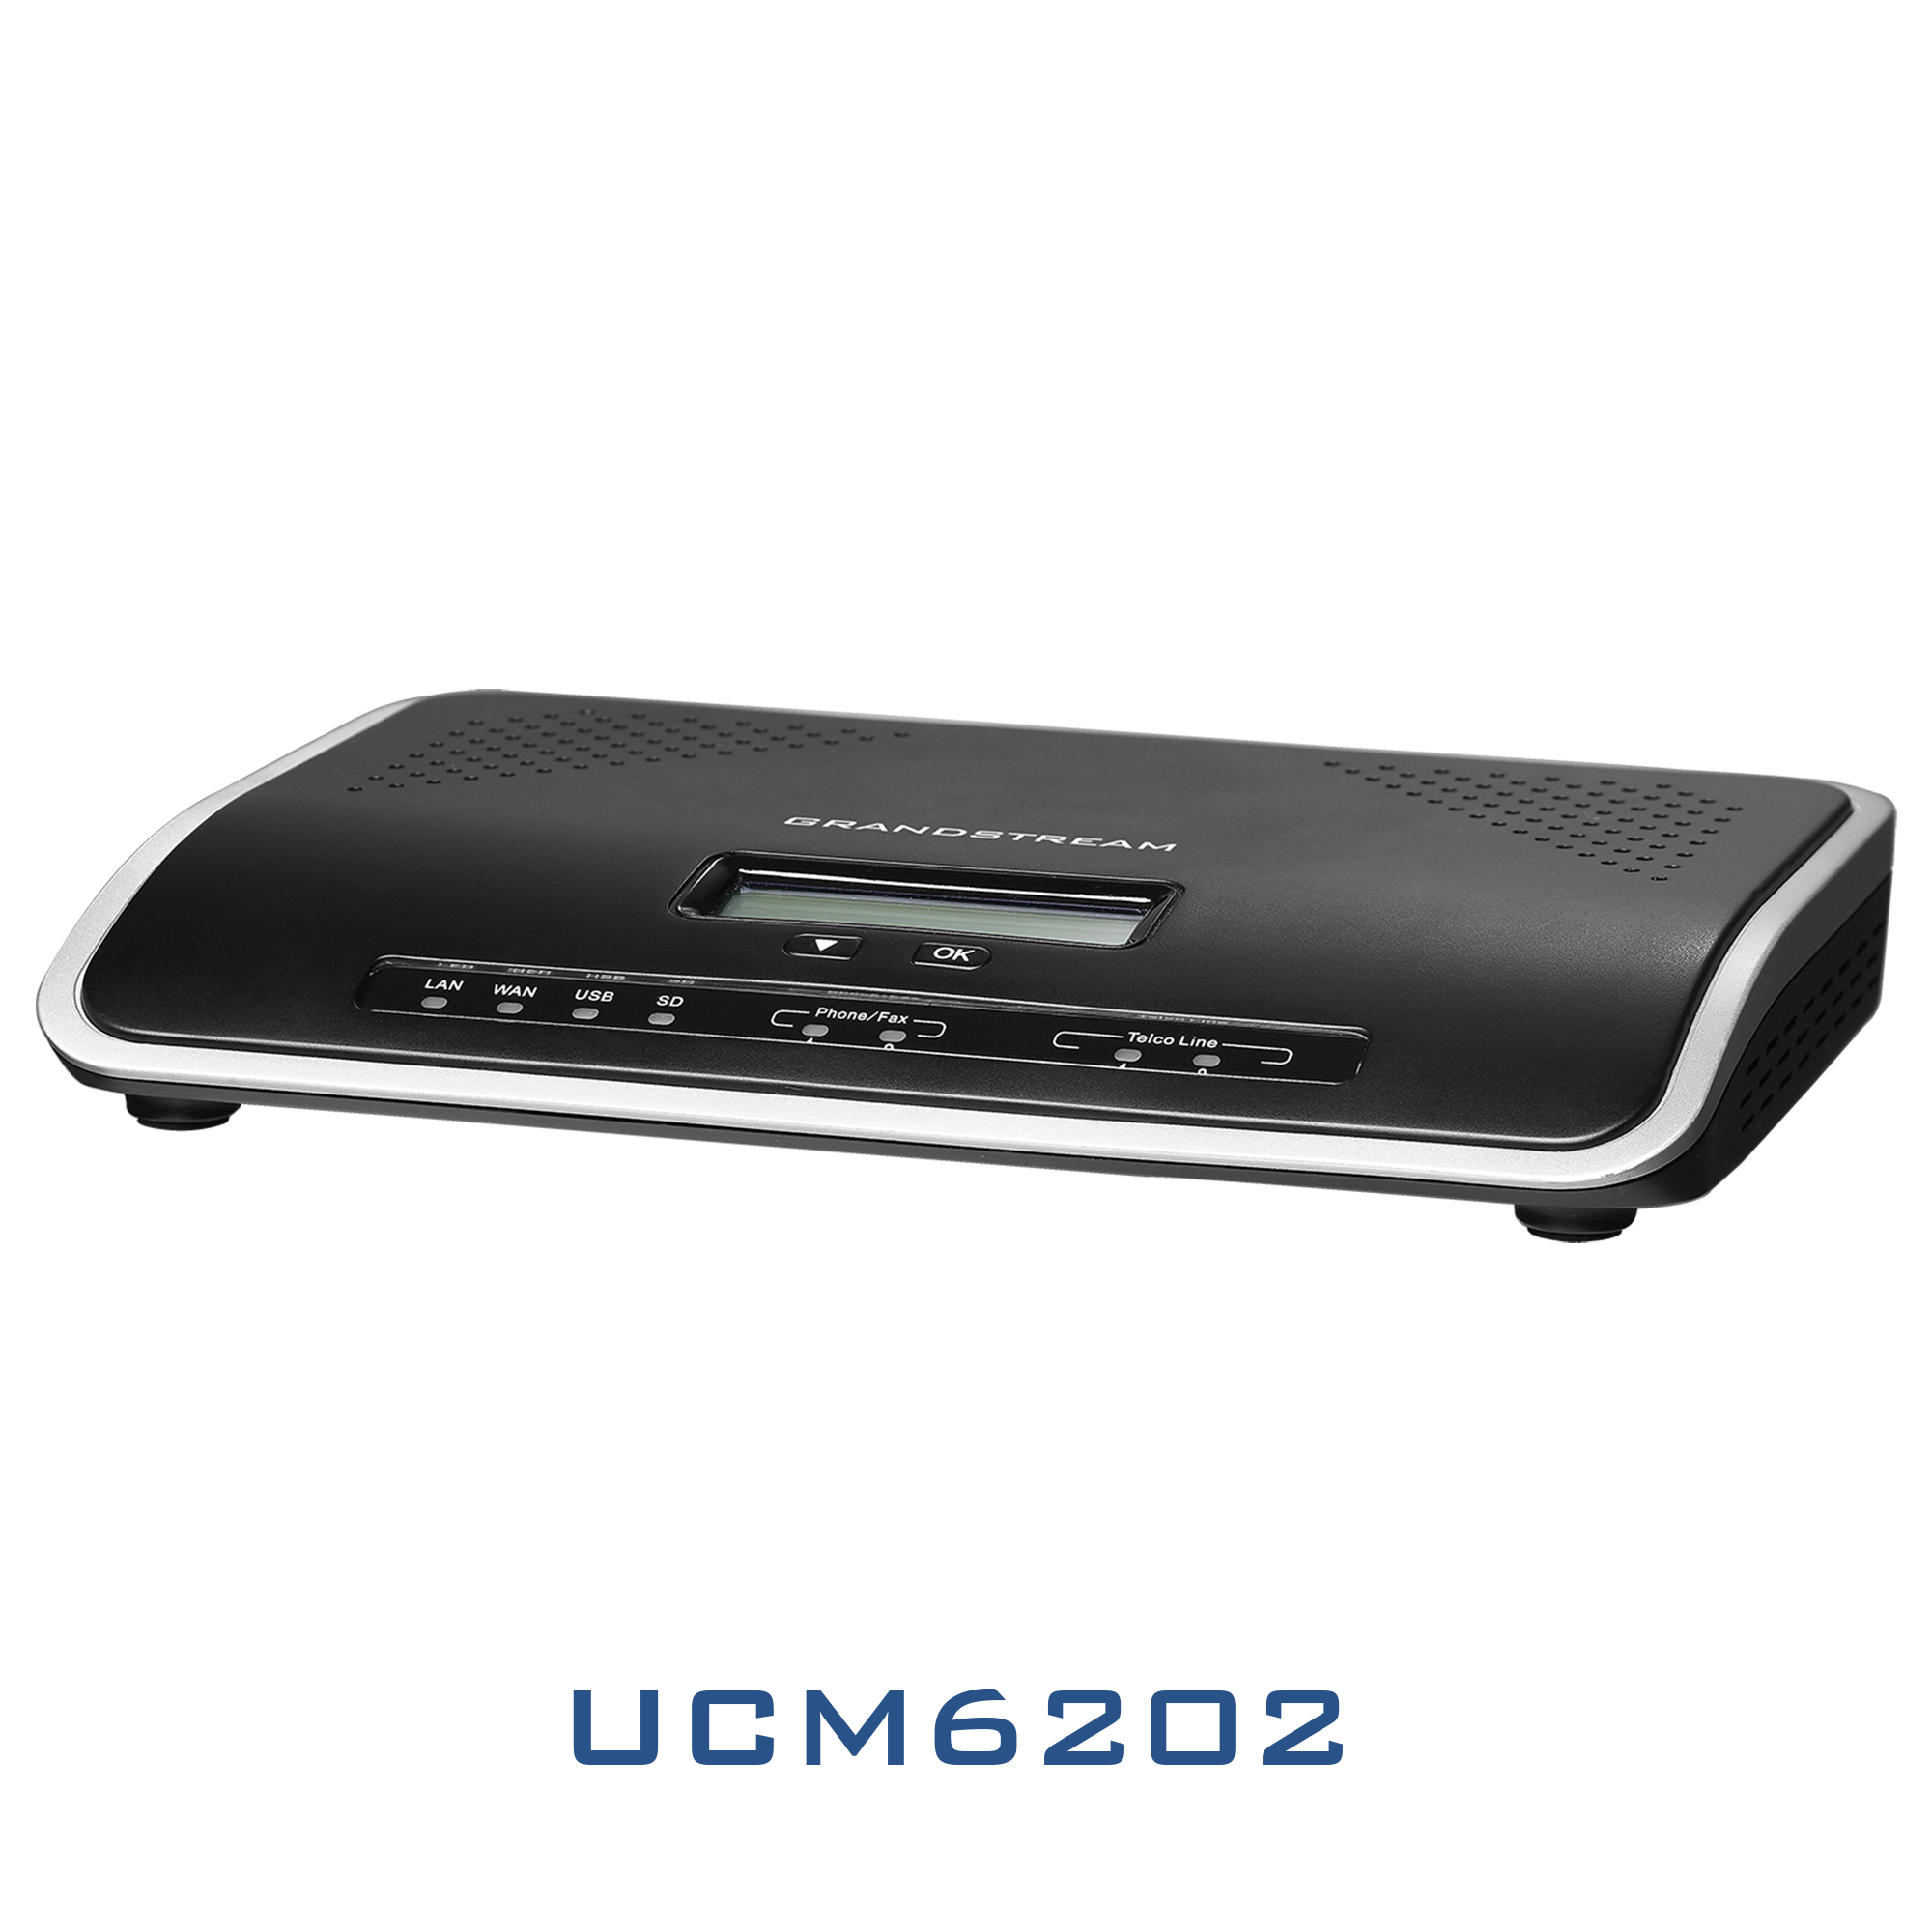 ucm6202_right_web